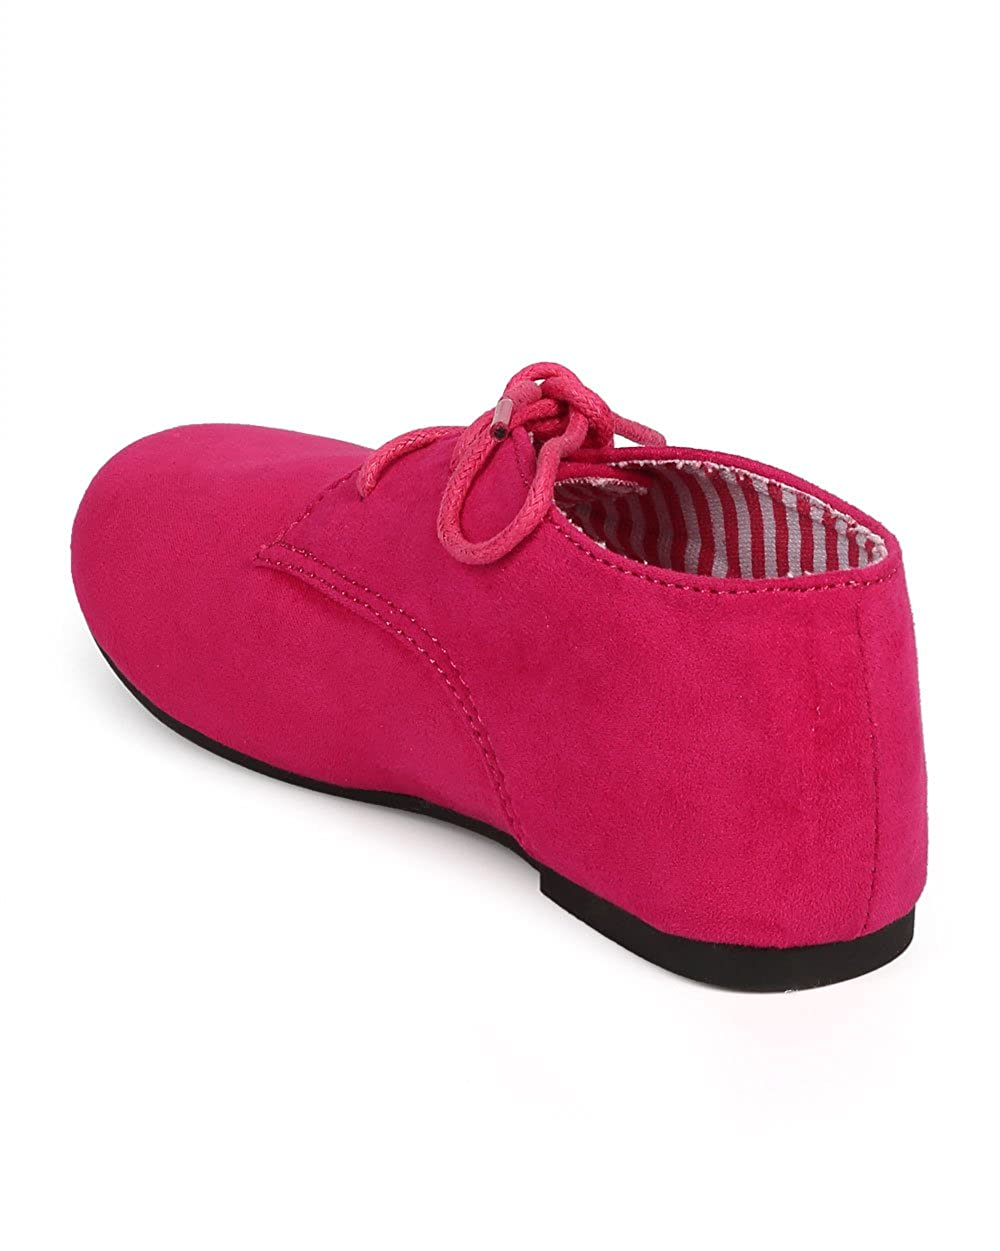 DG66 Size: Little Kid 1 Toddler//Little Girl//Big Girl Fuchsia Suede Round Toe Lace Up Classic Ankle Oxford Flat